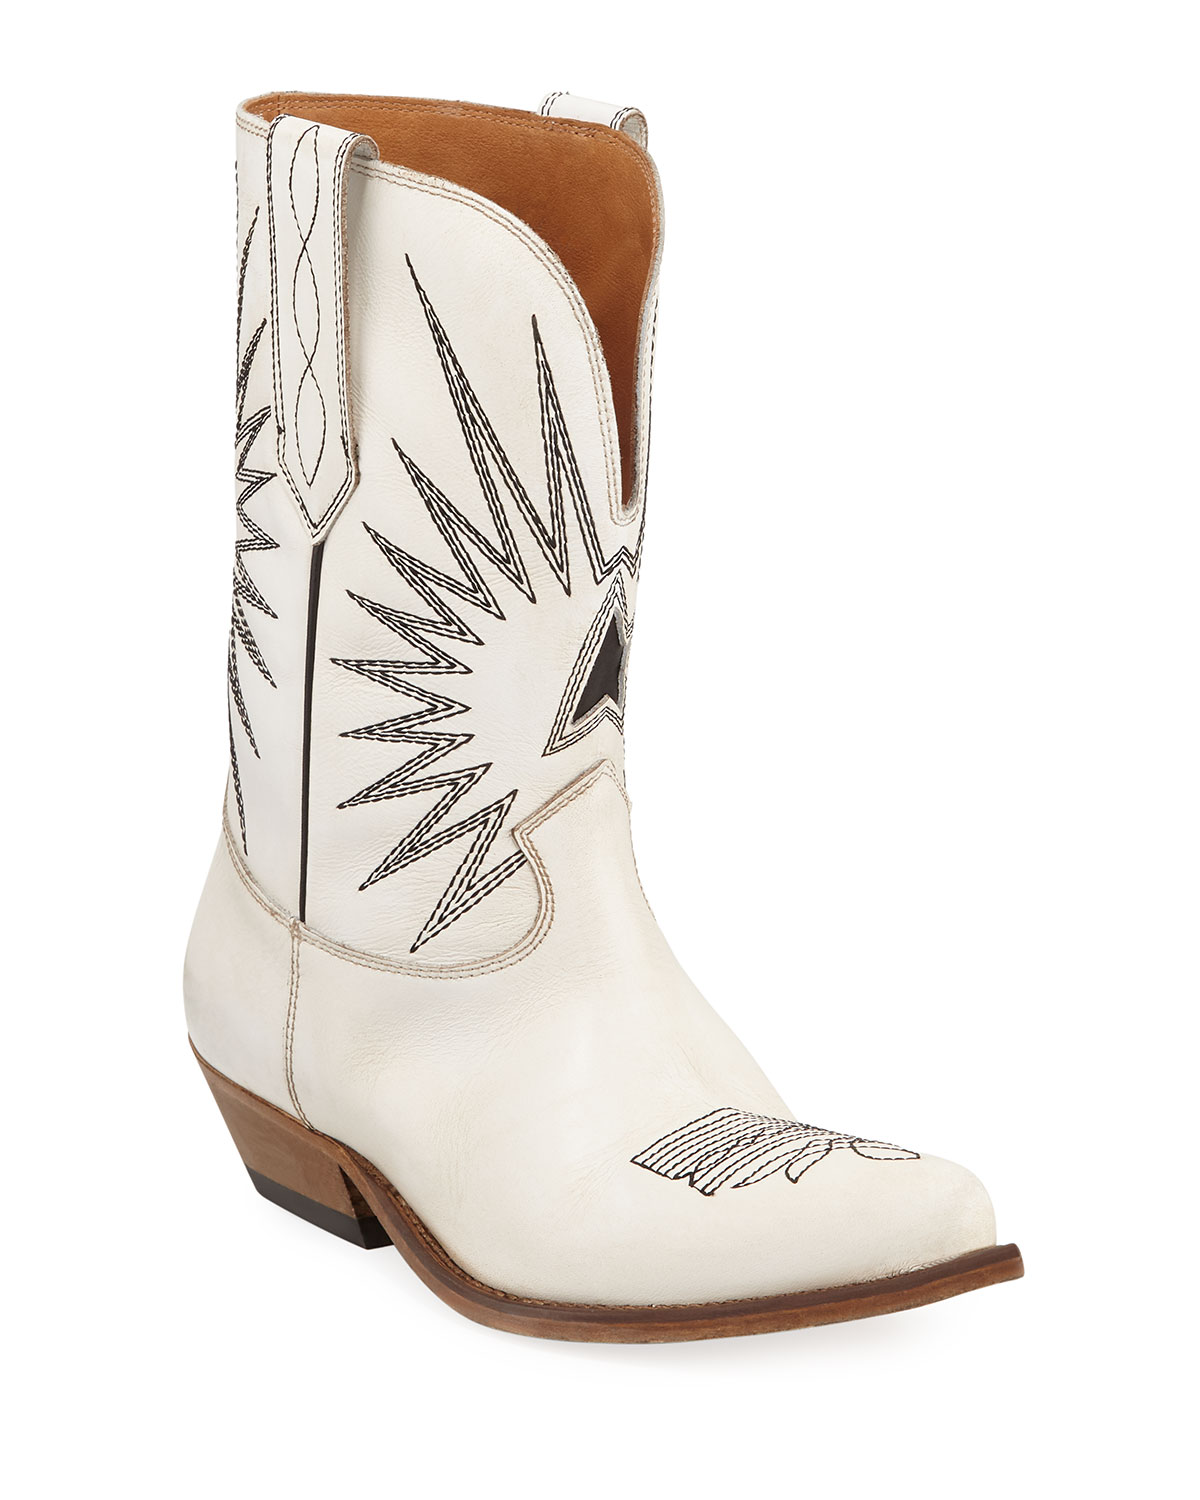 Golden Goose Wish Star Leather Western Boots  b84186a4115